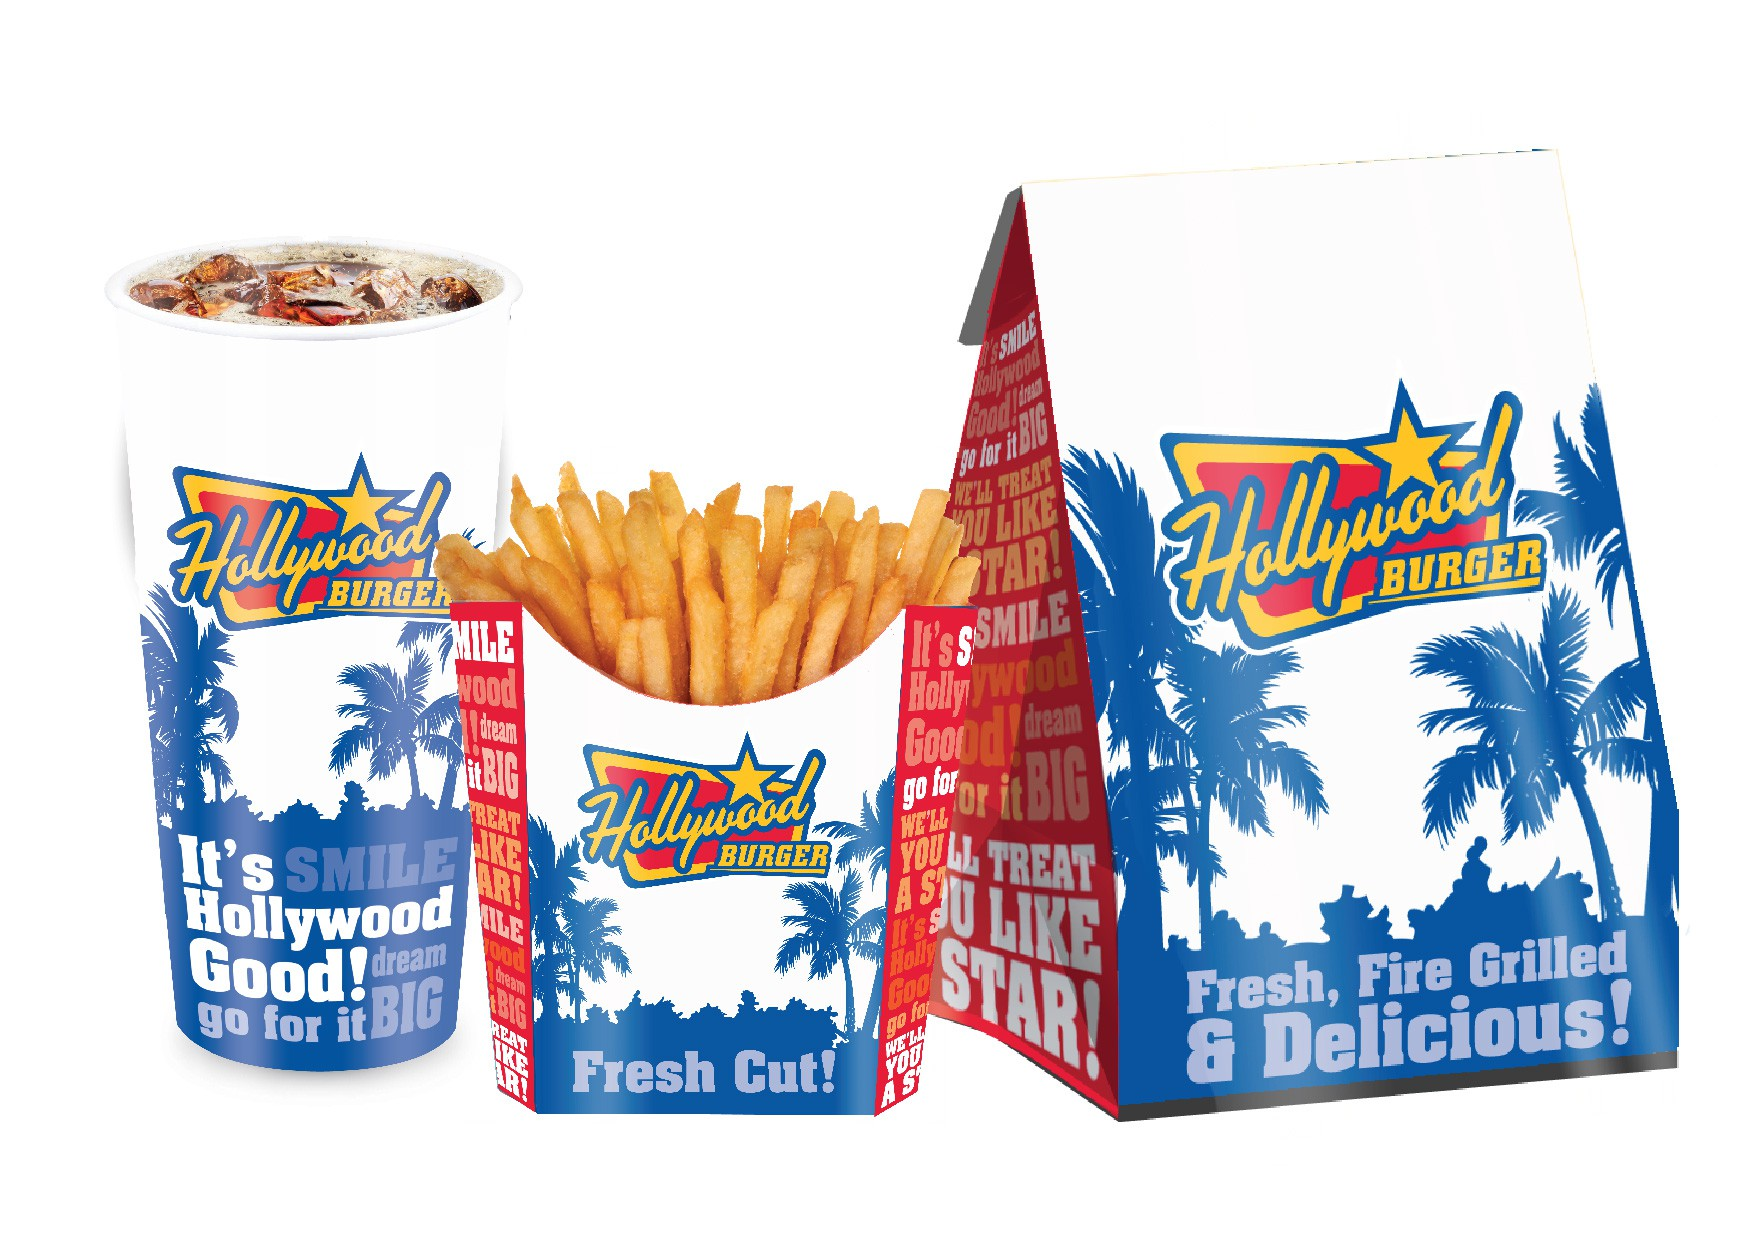 Hollywood Burger Product Packaging!